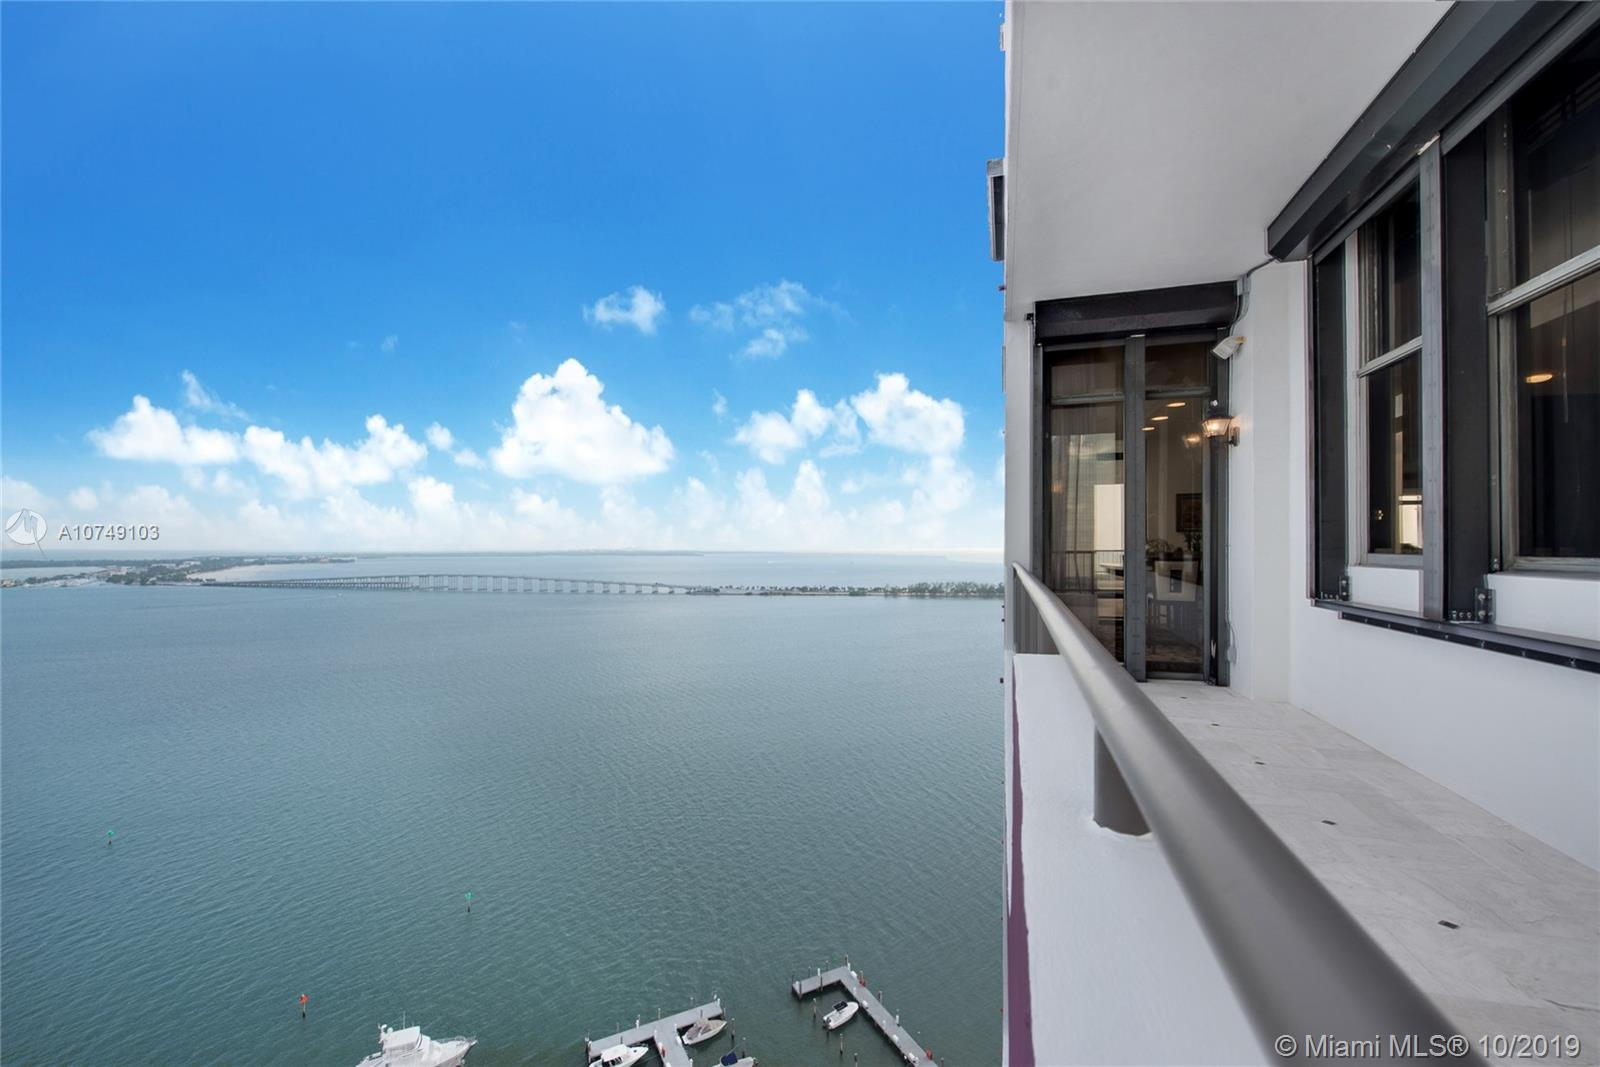 Gorgeous, One of a Kind Penthouse on Miami's Brickell Avenue boasting 7,280 Square Feet of living area and over 1,000 Square Feet of terraces offering unobstructed Ocean and City views. Featuring private elevators opening into a keyed foyer, this condo includes 6 bedrooms - 6.5 baths, library/den, maids-quarters, and multiple entertainment areas. Floor to ceiling windows throughout, volume ceilings, state of the art appliances, 6 parking spaces, and a 40 FT deeded dock. Building amenities are spaciously laid-out thought out throughout the property, unachievable in today's construction; guarded gate, 24-hour concierge and security, fully-equipped gym, pool & jacuzzi, BBQ area, multiple party rooms, kids room, and more.